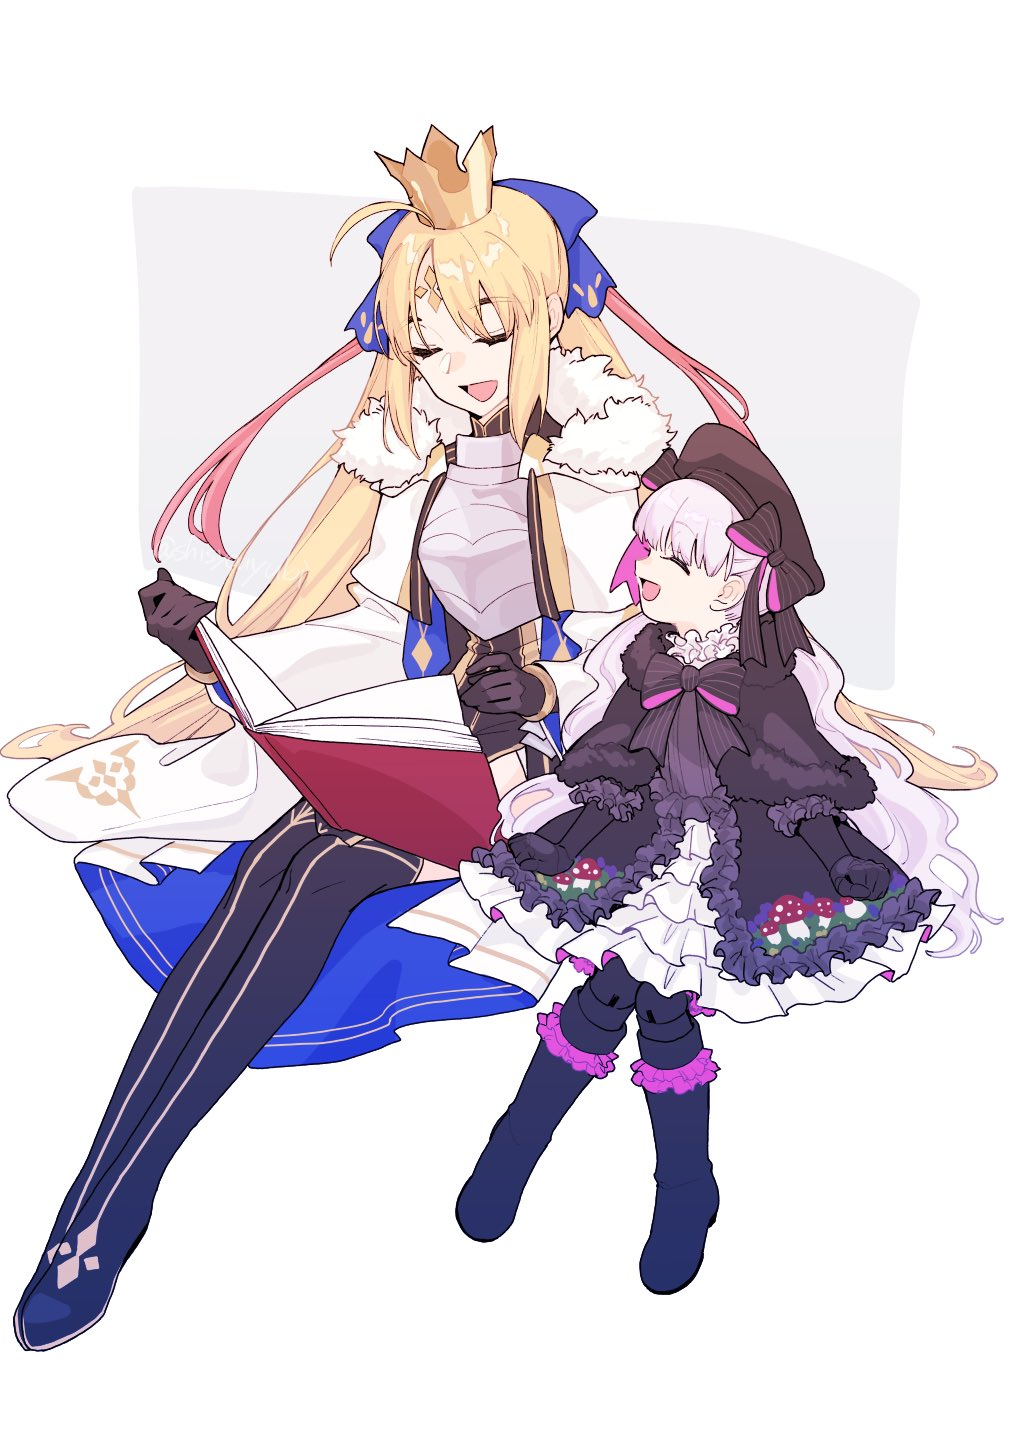 2girls ahoge armor armored_dress artoria_pendragon_(caster)_(fate) artoria_pendragon_(fate) bangs black_bow black_capelet black_dress black_footwear black_gloves black_headwear black_legwear black_neckwear blonde_hair blue_bow book boots bow bowtie breastplate capelet closed_eyes commentary_request crown dress elbow_gloves eyebrows_visible_through_hair facial_mark fate/extra fate/grand_order fate_(series) forehead_mark frilled_skirt frills fur-trimmed_capelet fur_trim gloves hair_bow hair_ribbon hat highres holding holding_book long_hair multiple_girls mushroom nursery_rhyme_(fate) open_book open_mouth parted_bangs red_ribbon ribbon shayubi sidelocks sitting skirt smile tongue twintails very_long_hair wavy_hair white_background white_capelet white_dress white_hair wide_sleeves